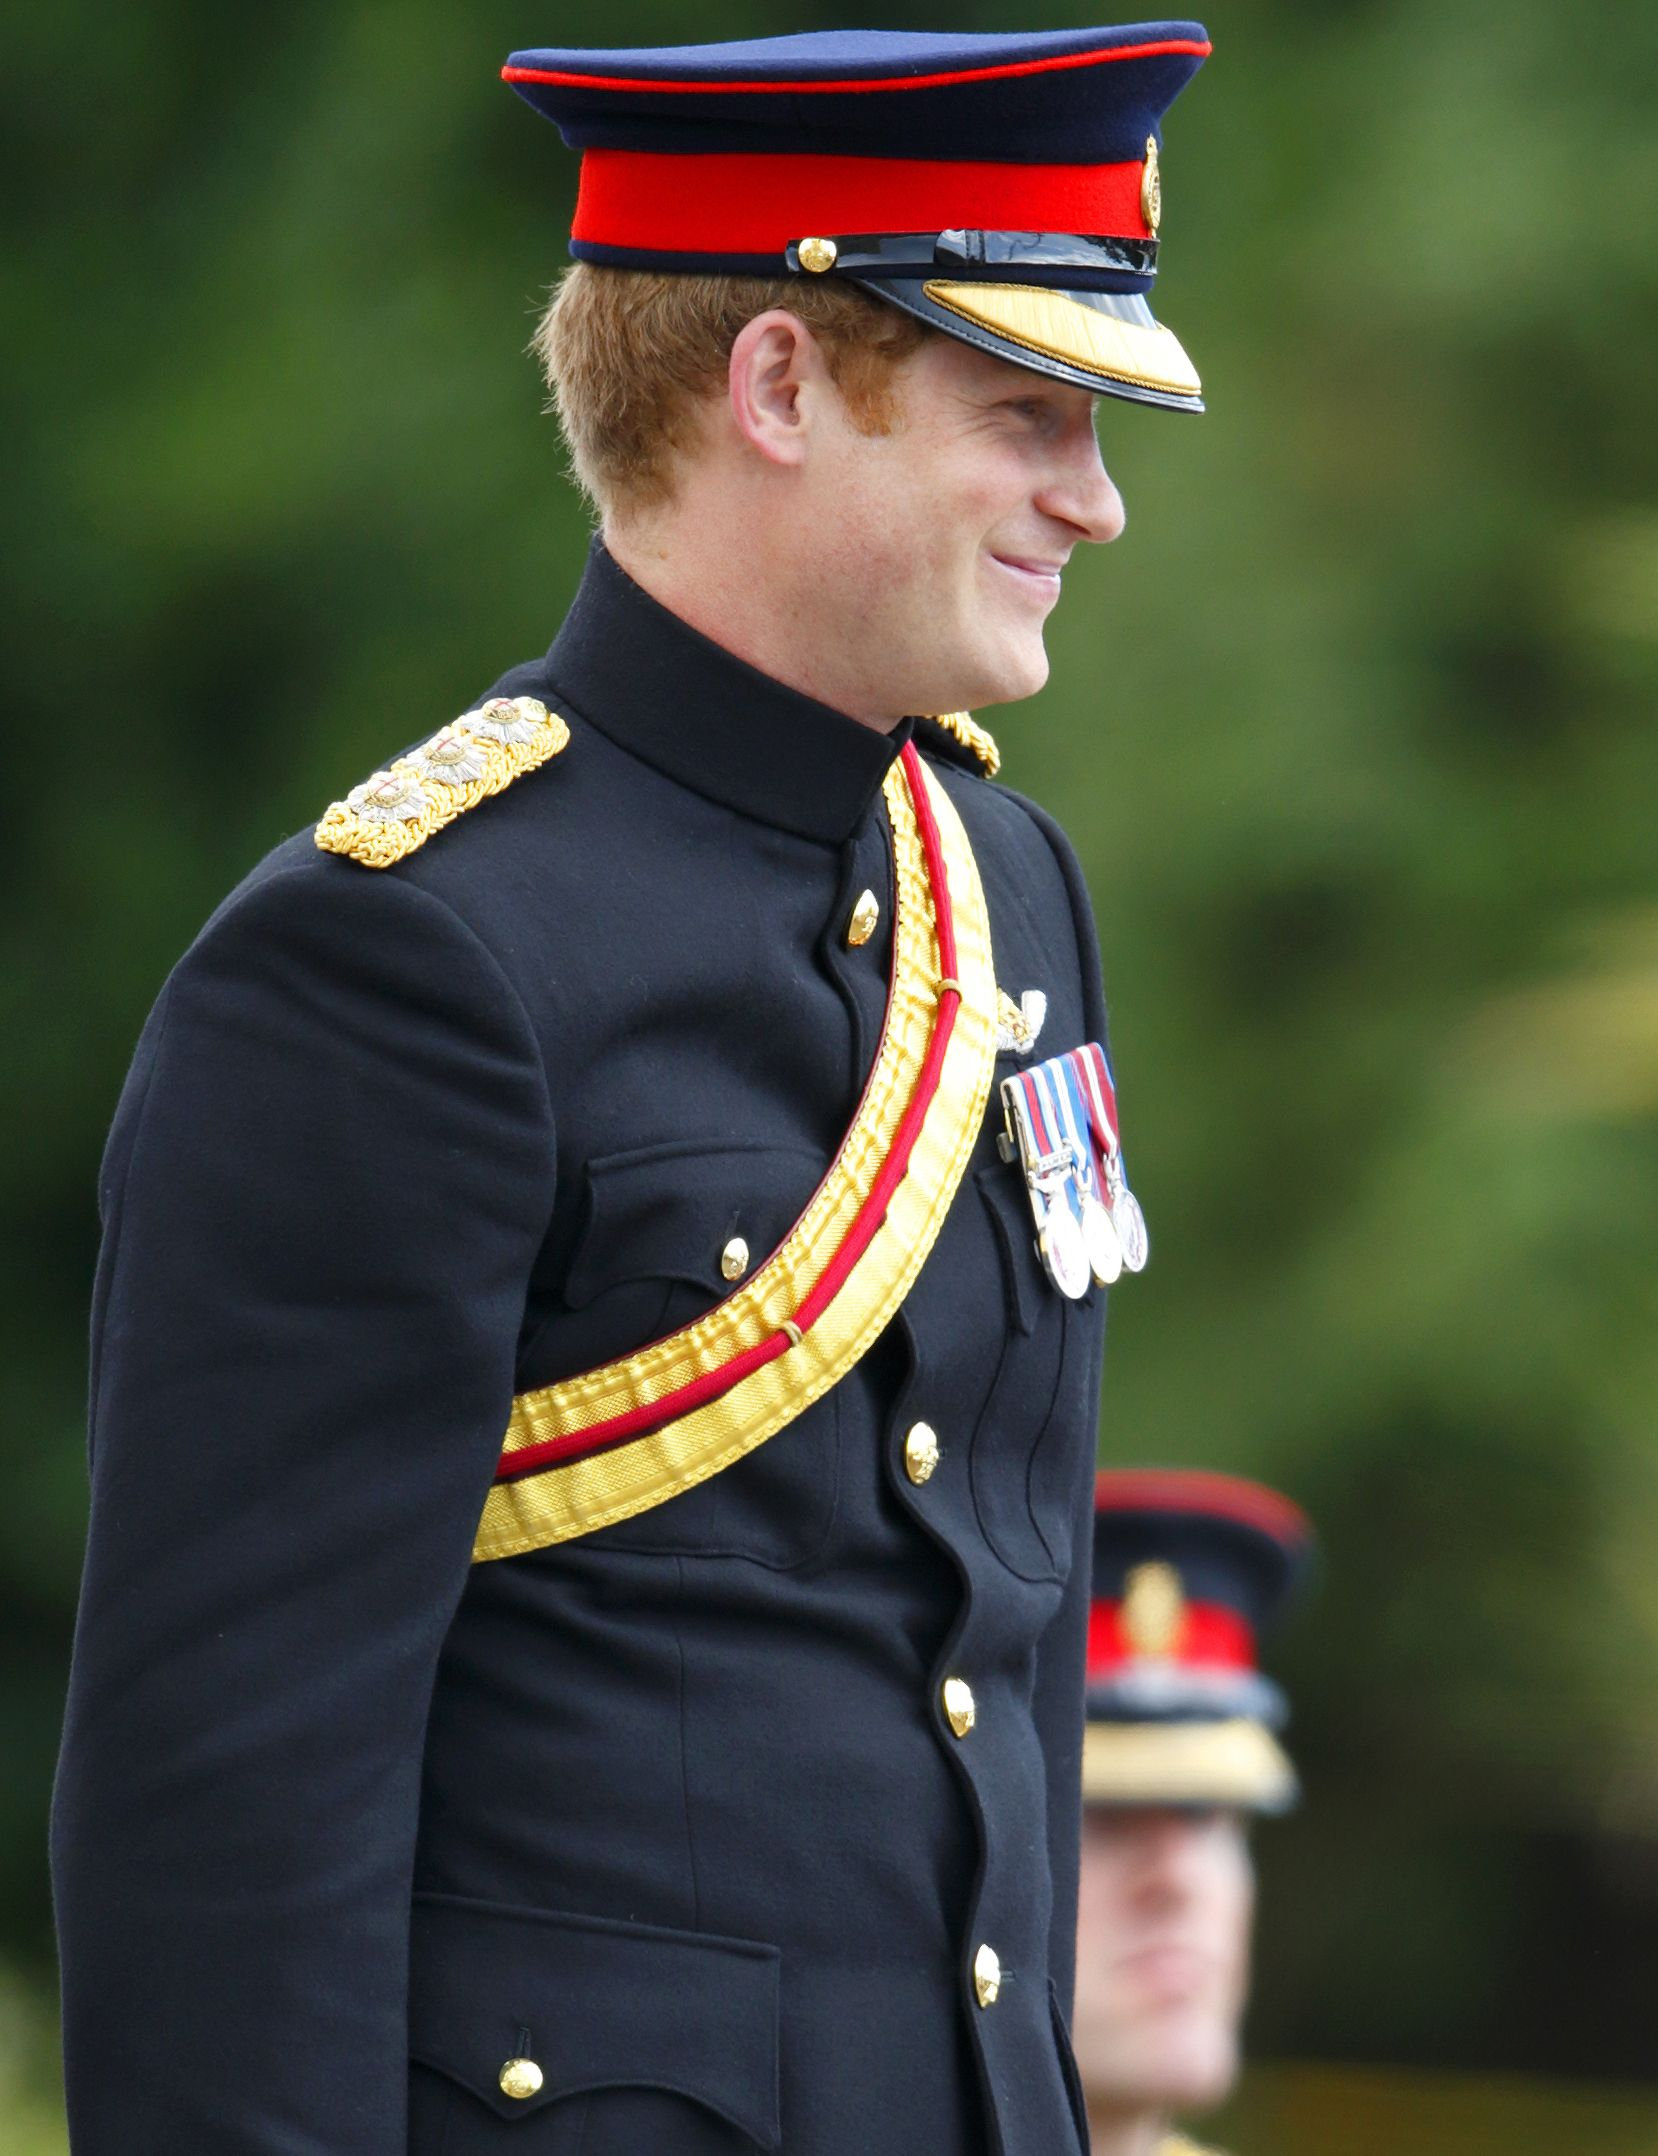 Proof That Prince Harry Is a Real-Life Prince Charming